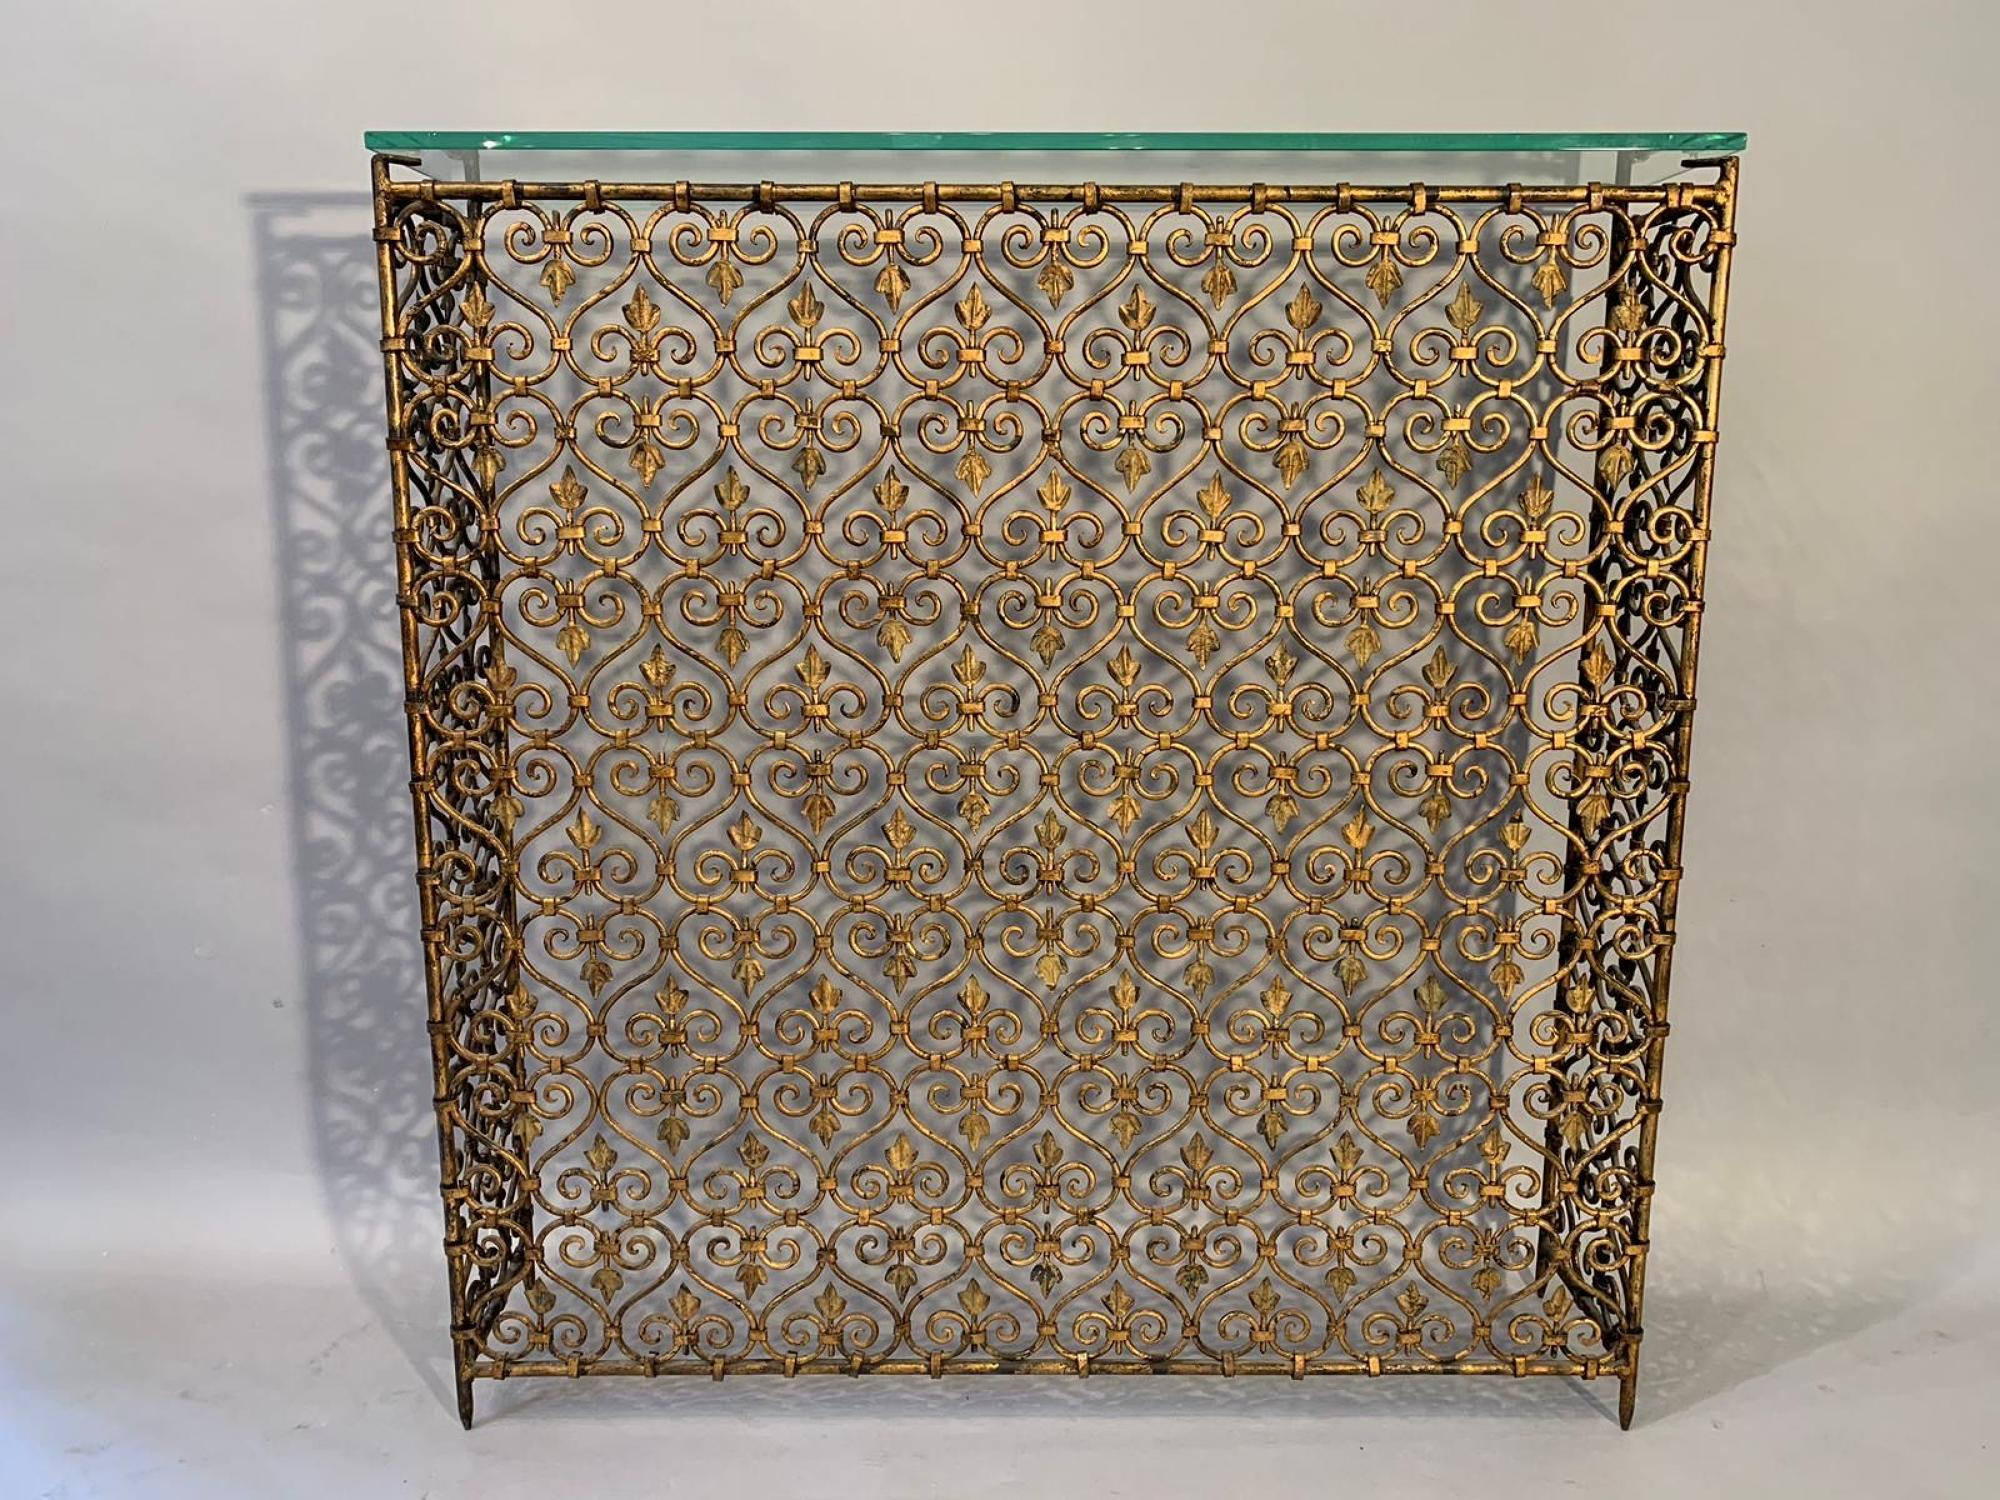 Gilt metal scroll console/radiator cover